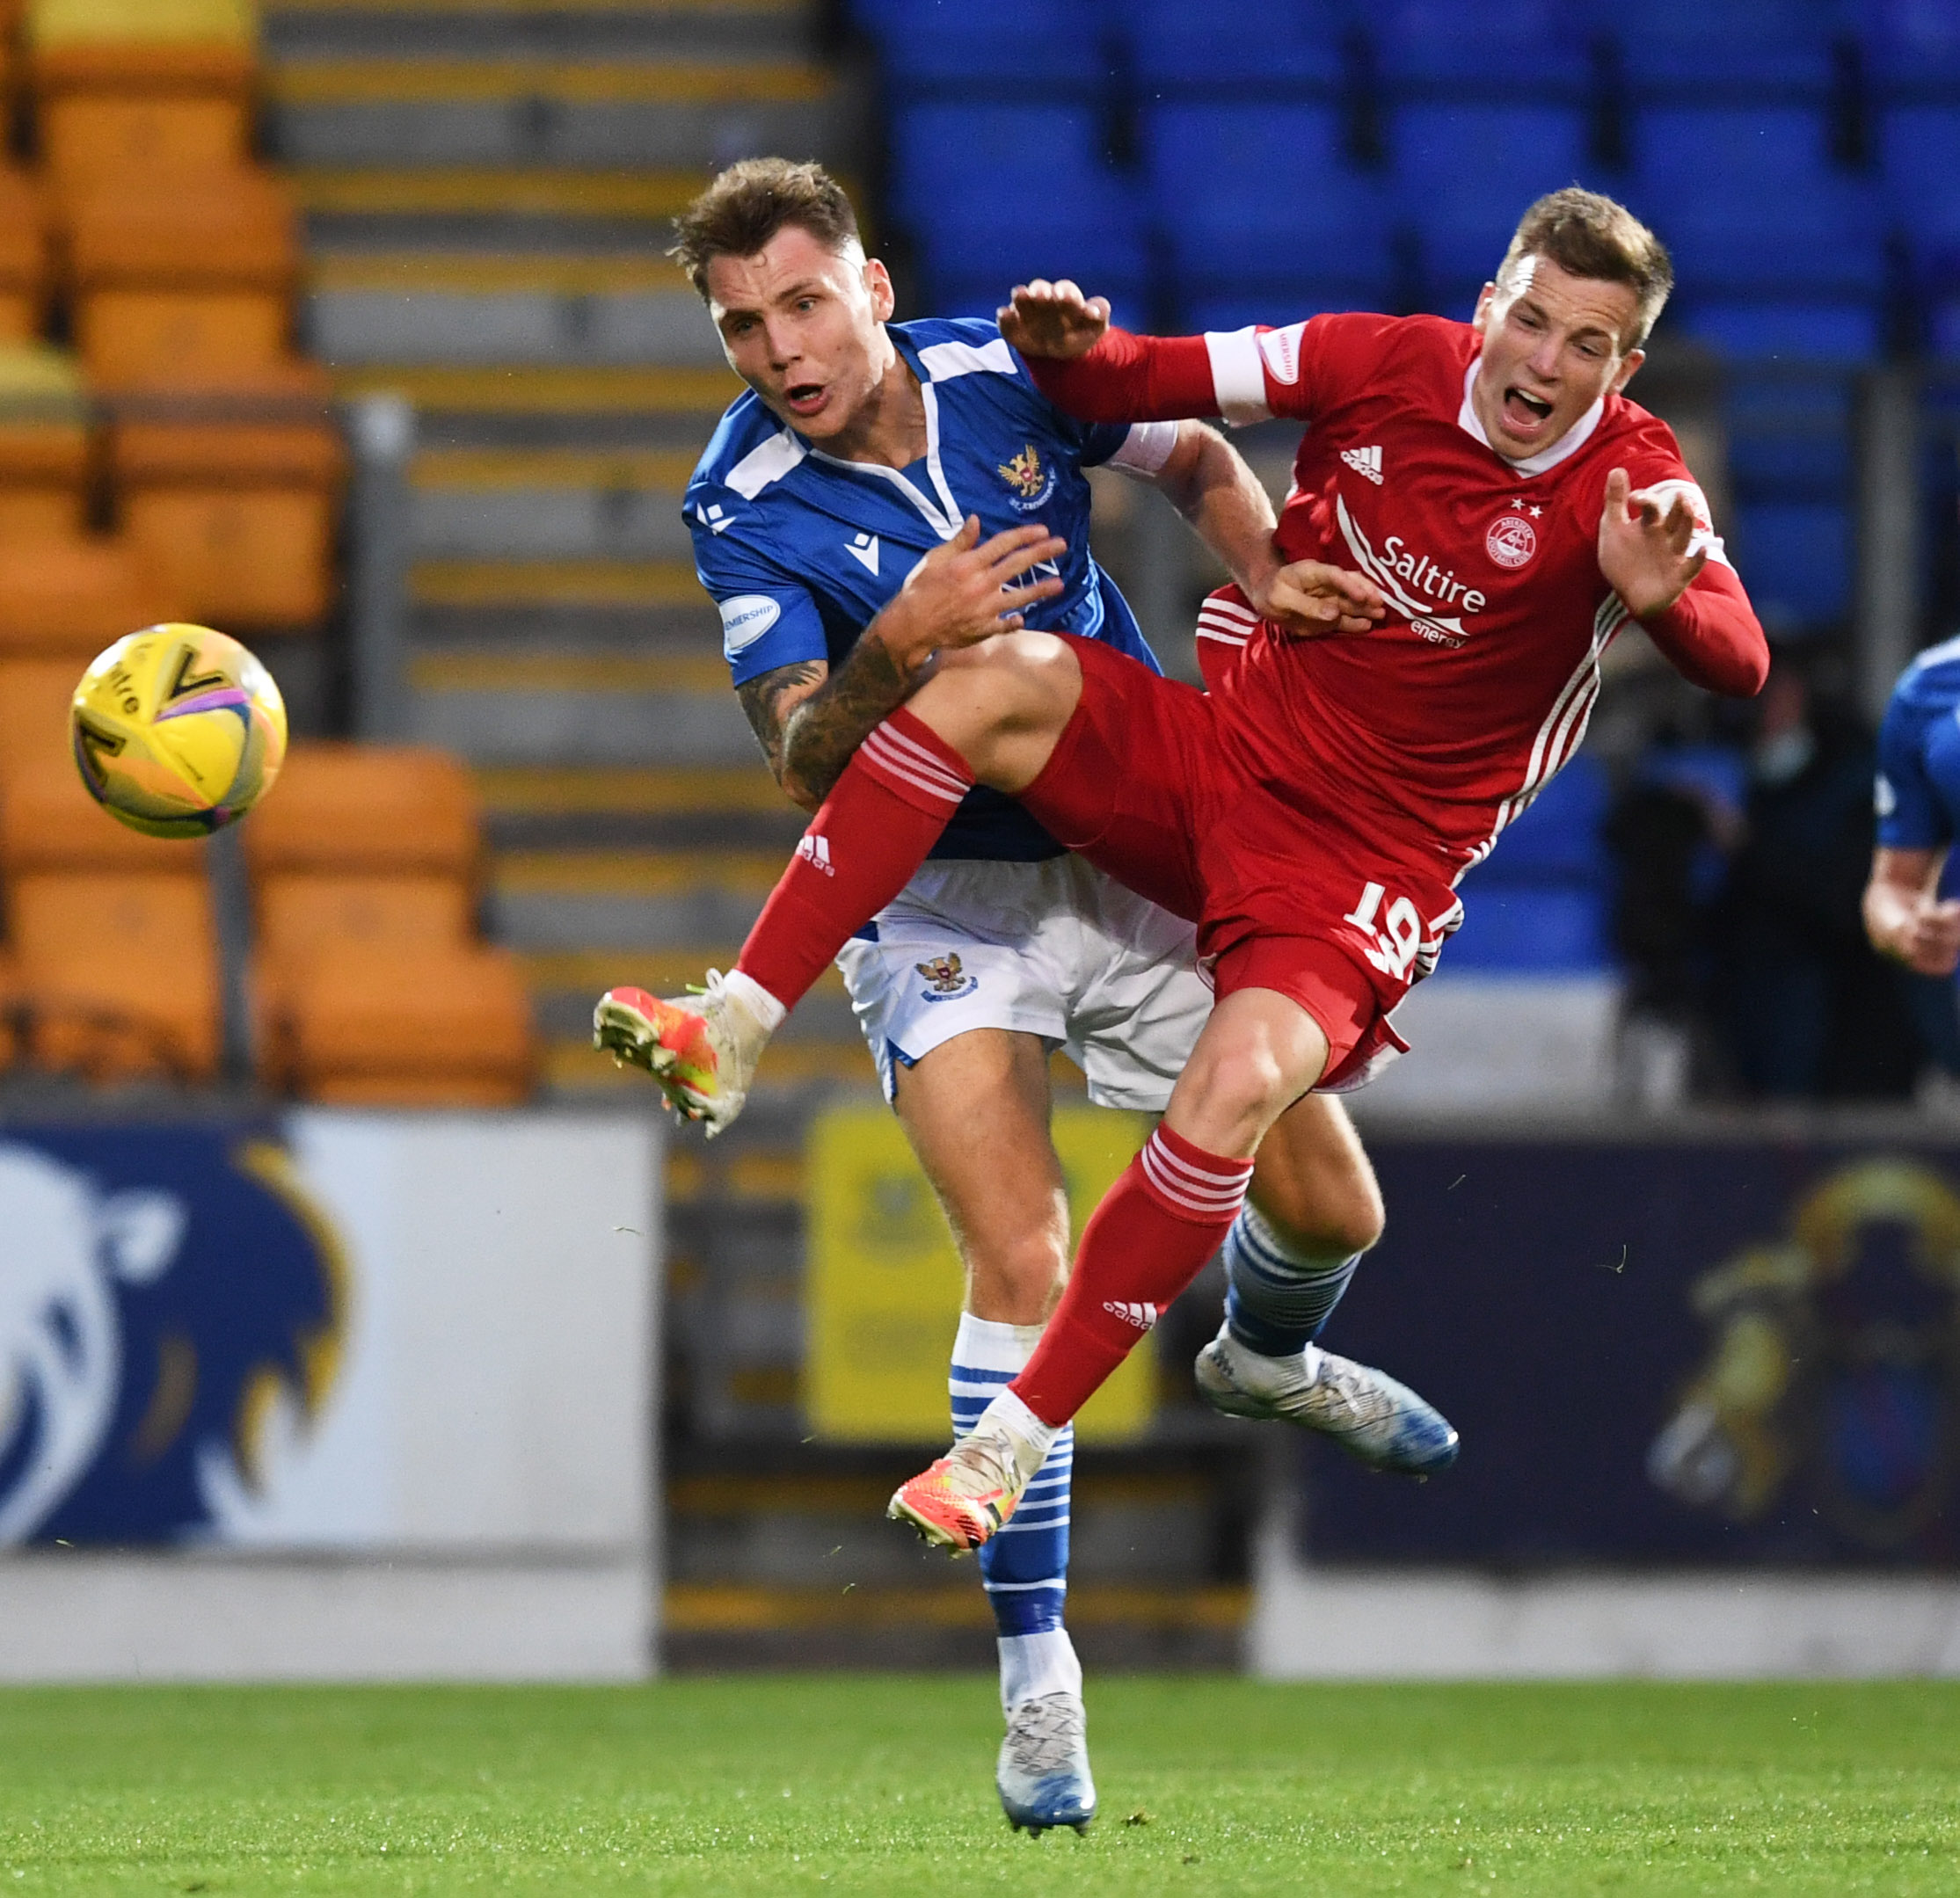 Lewis Ferguson (right) is challenged by Jason Kerr during the Scottish Premiership match between St Johnstone and Aberdeen at McDiarmid Park.